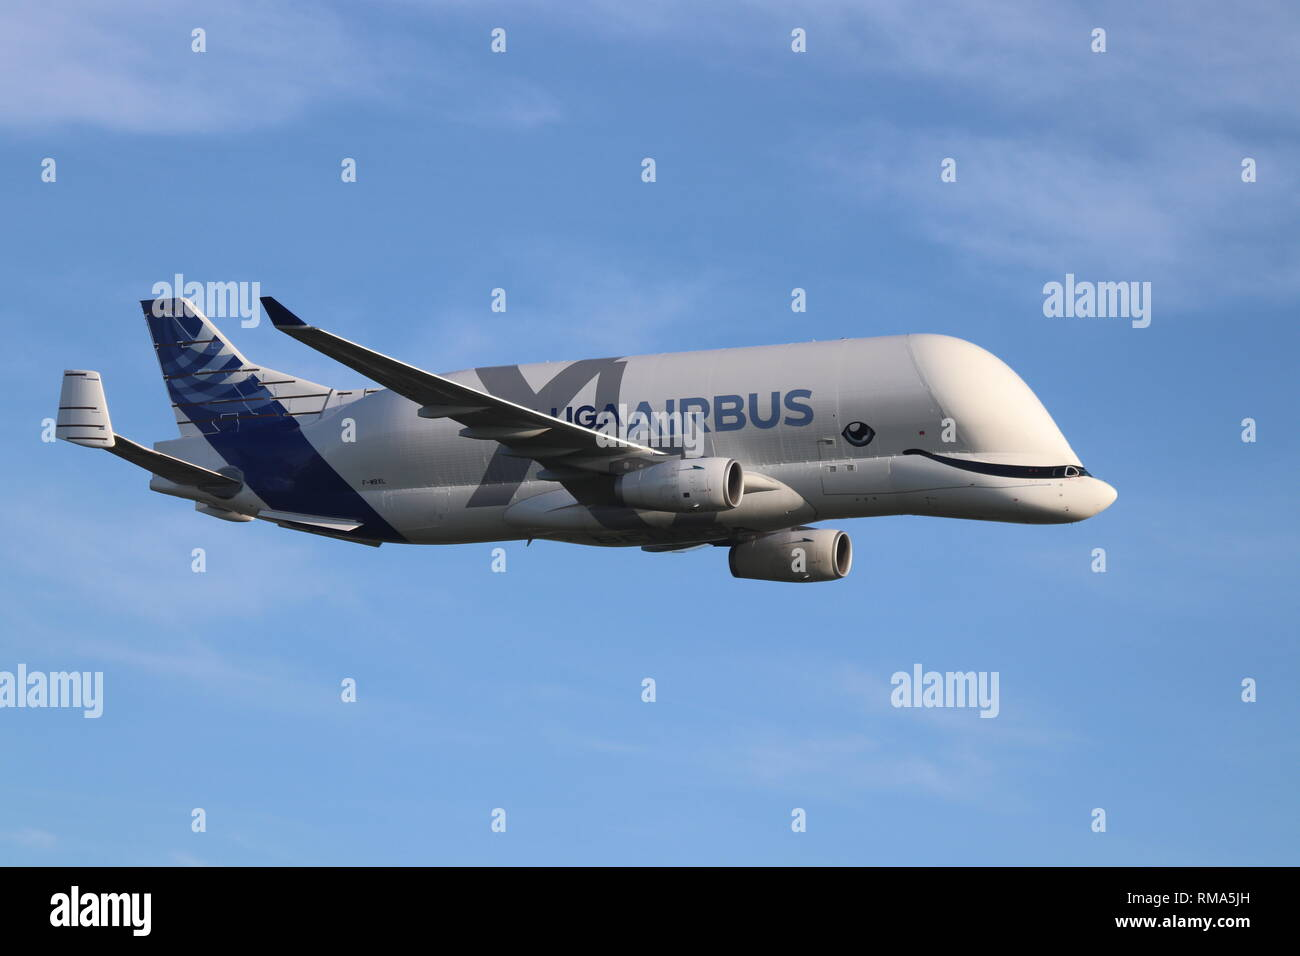 Airbus Beluga XL, Hawarden Airport, Deeside, Wales, UK Thursday 14 February 2019. The new airbus super-transporter Beluga XL lands at Hawarden airport North Wales for the first time. Credit: Mike Clarke/Alamy Live News Stock Photo